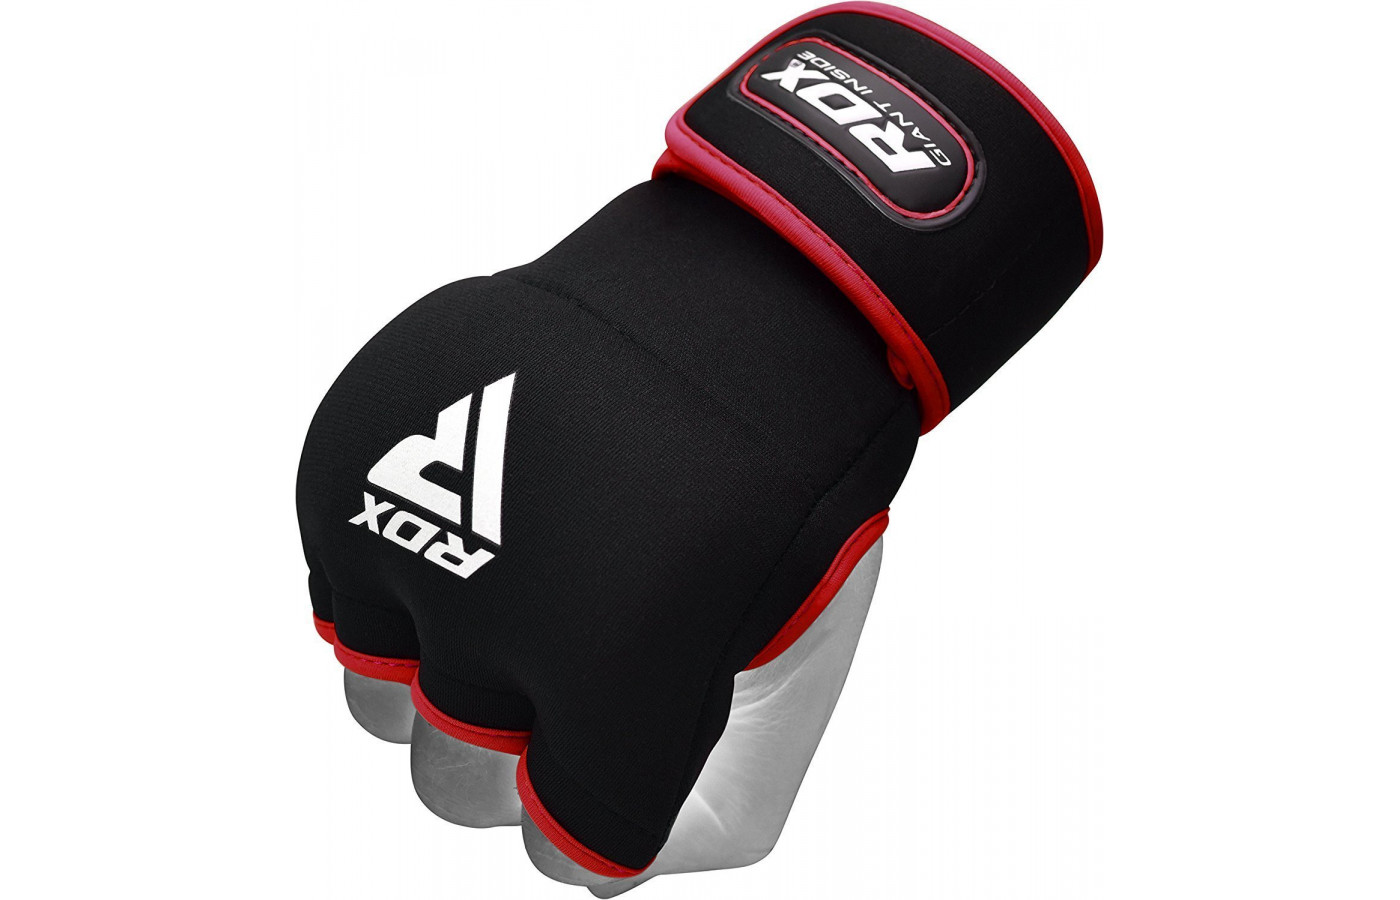 rdx hand wraps red